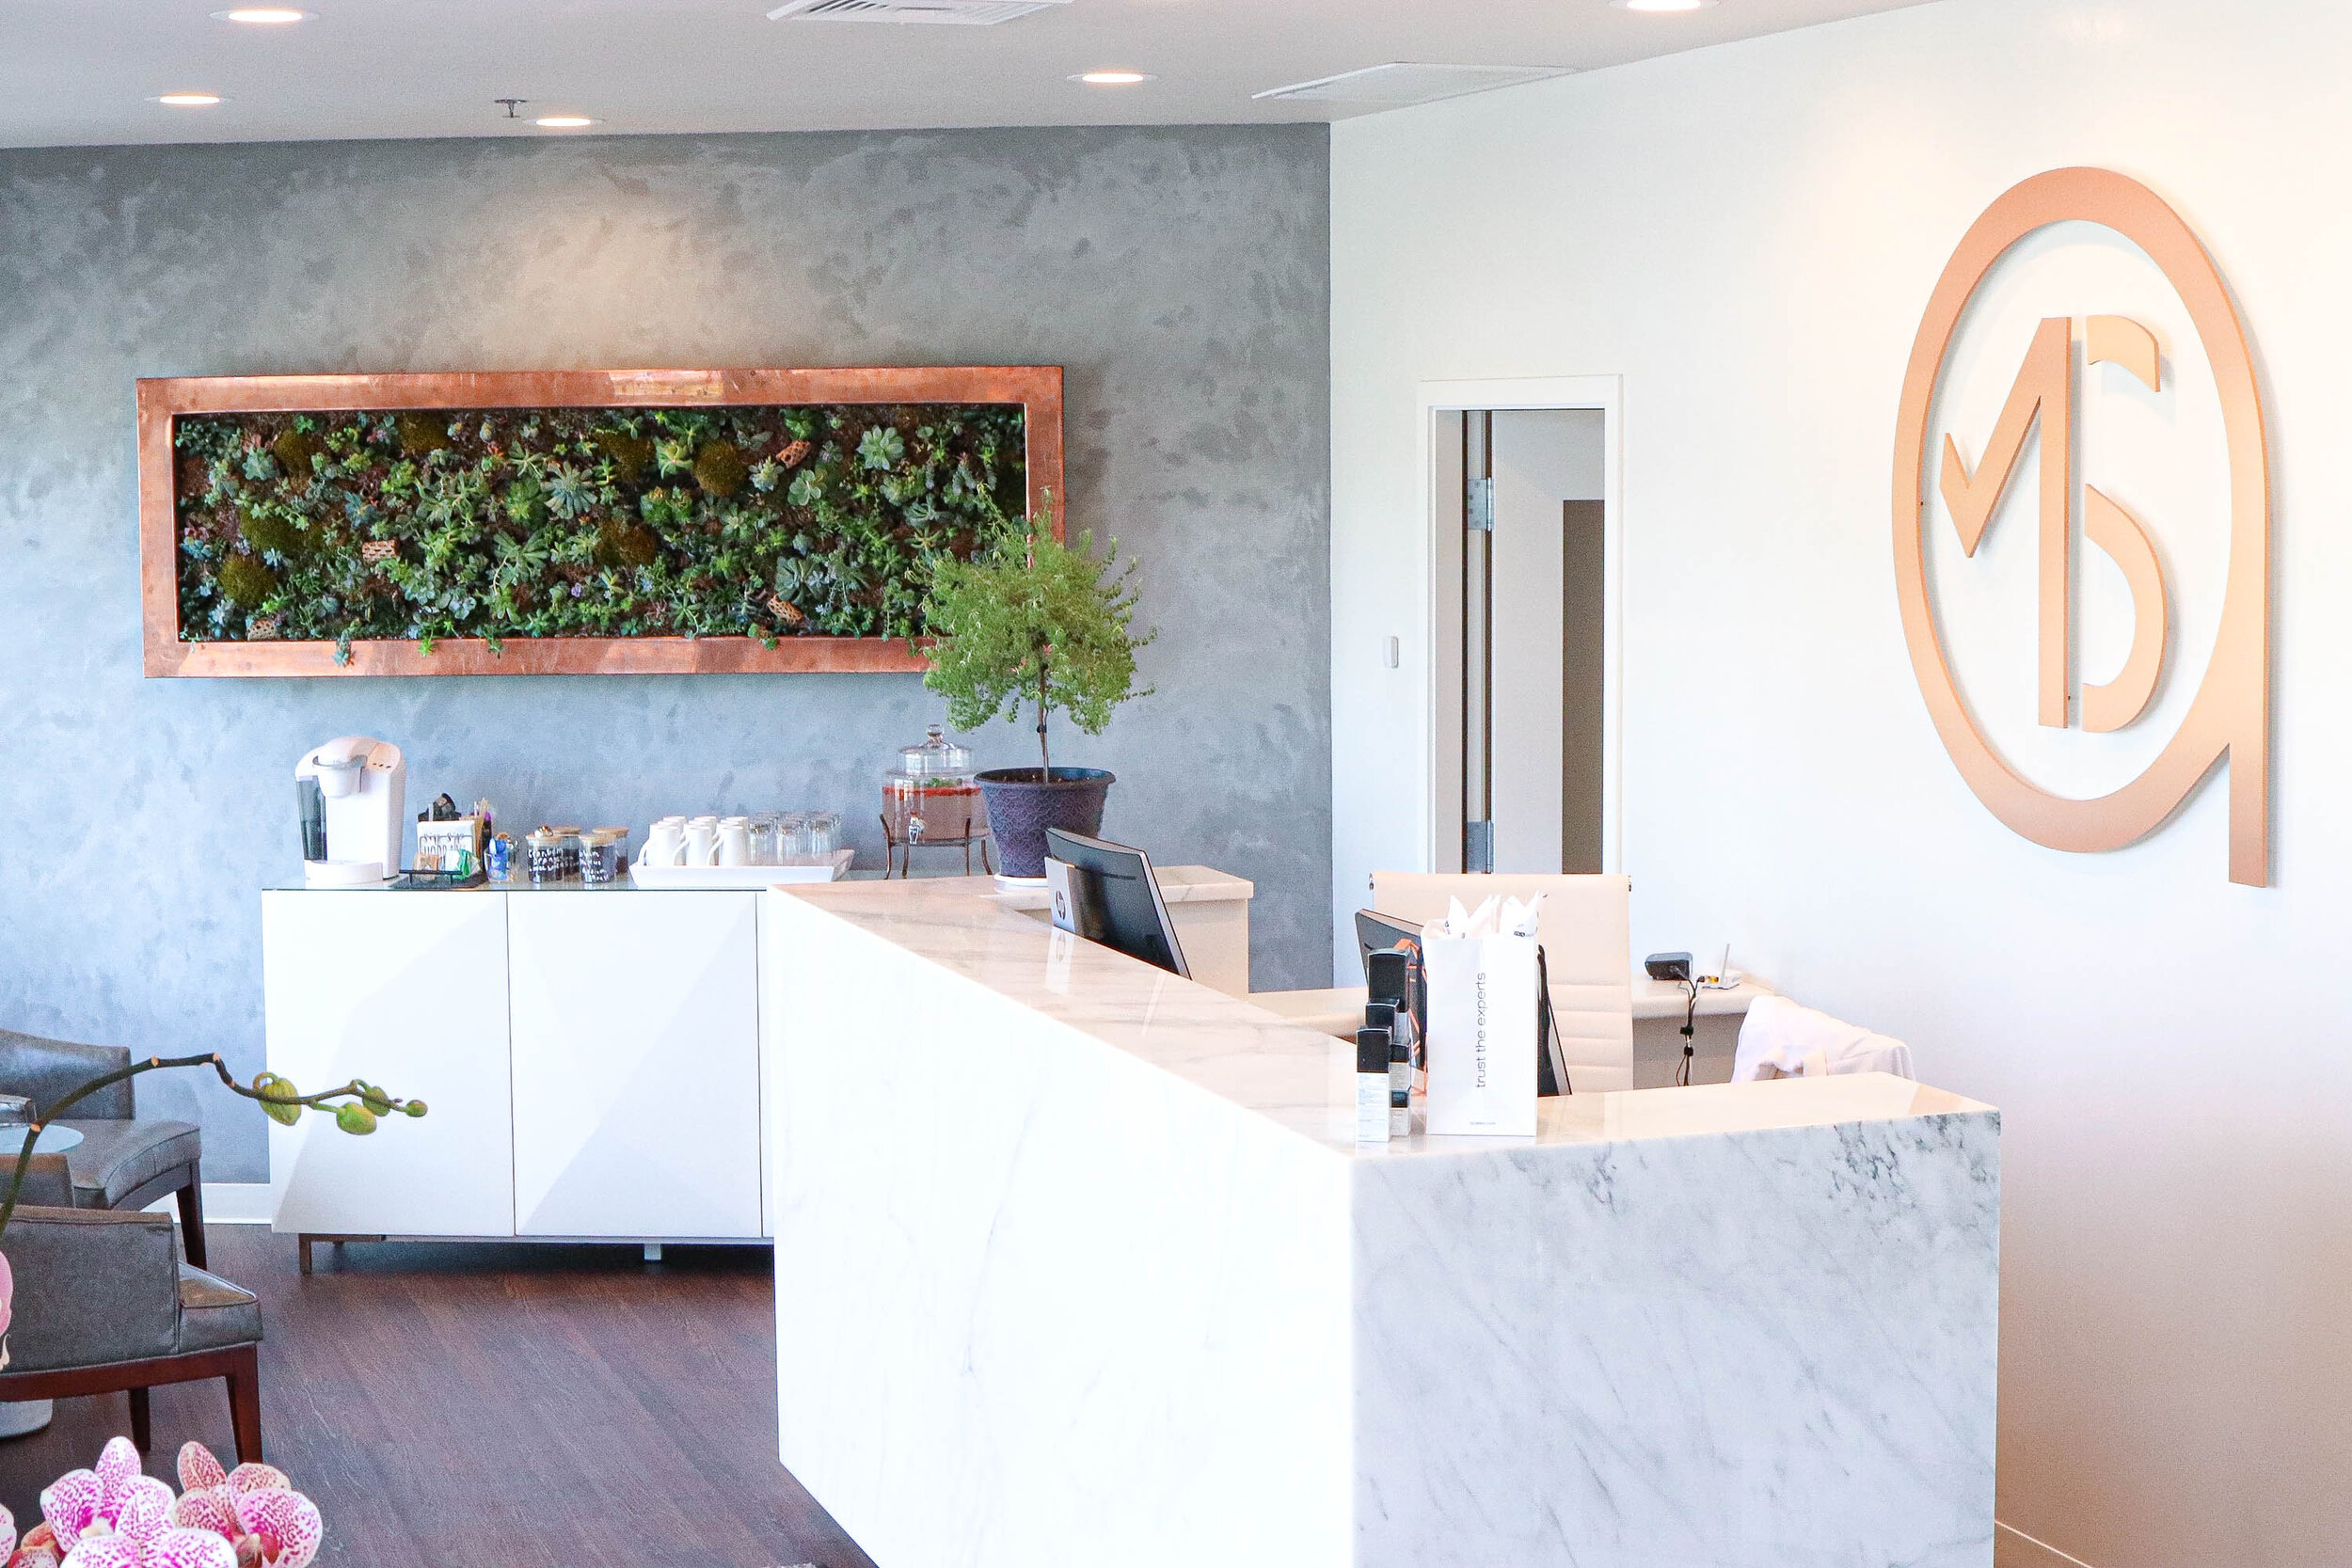 North Austin Med Spa